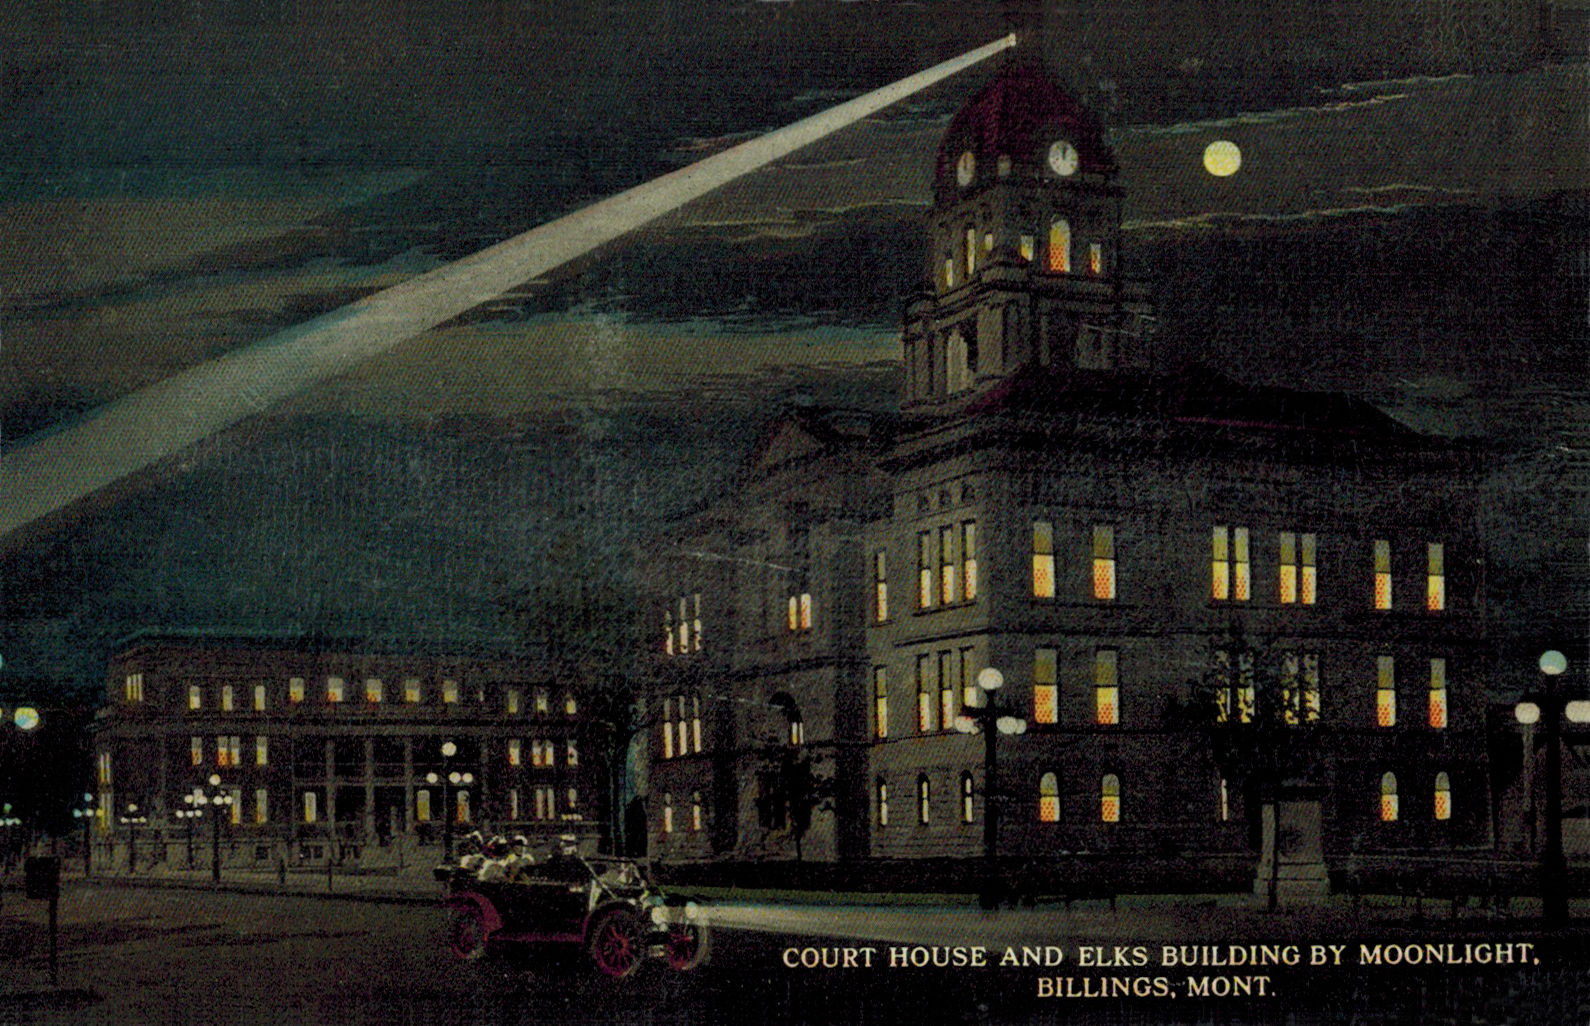 OCB Postcard Moonlight.jpg